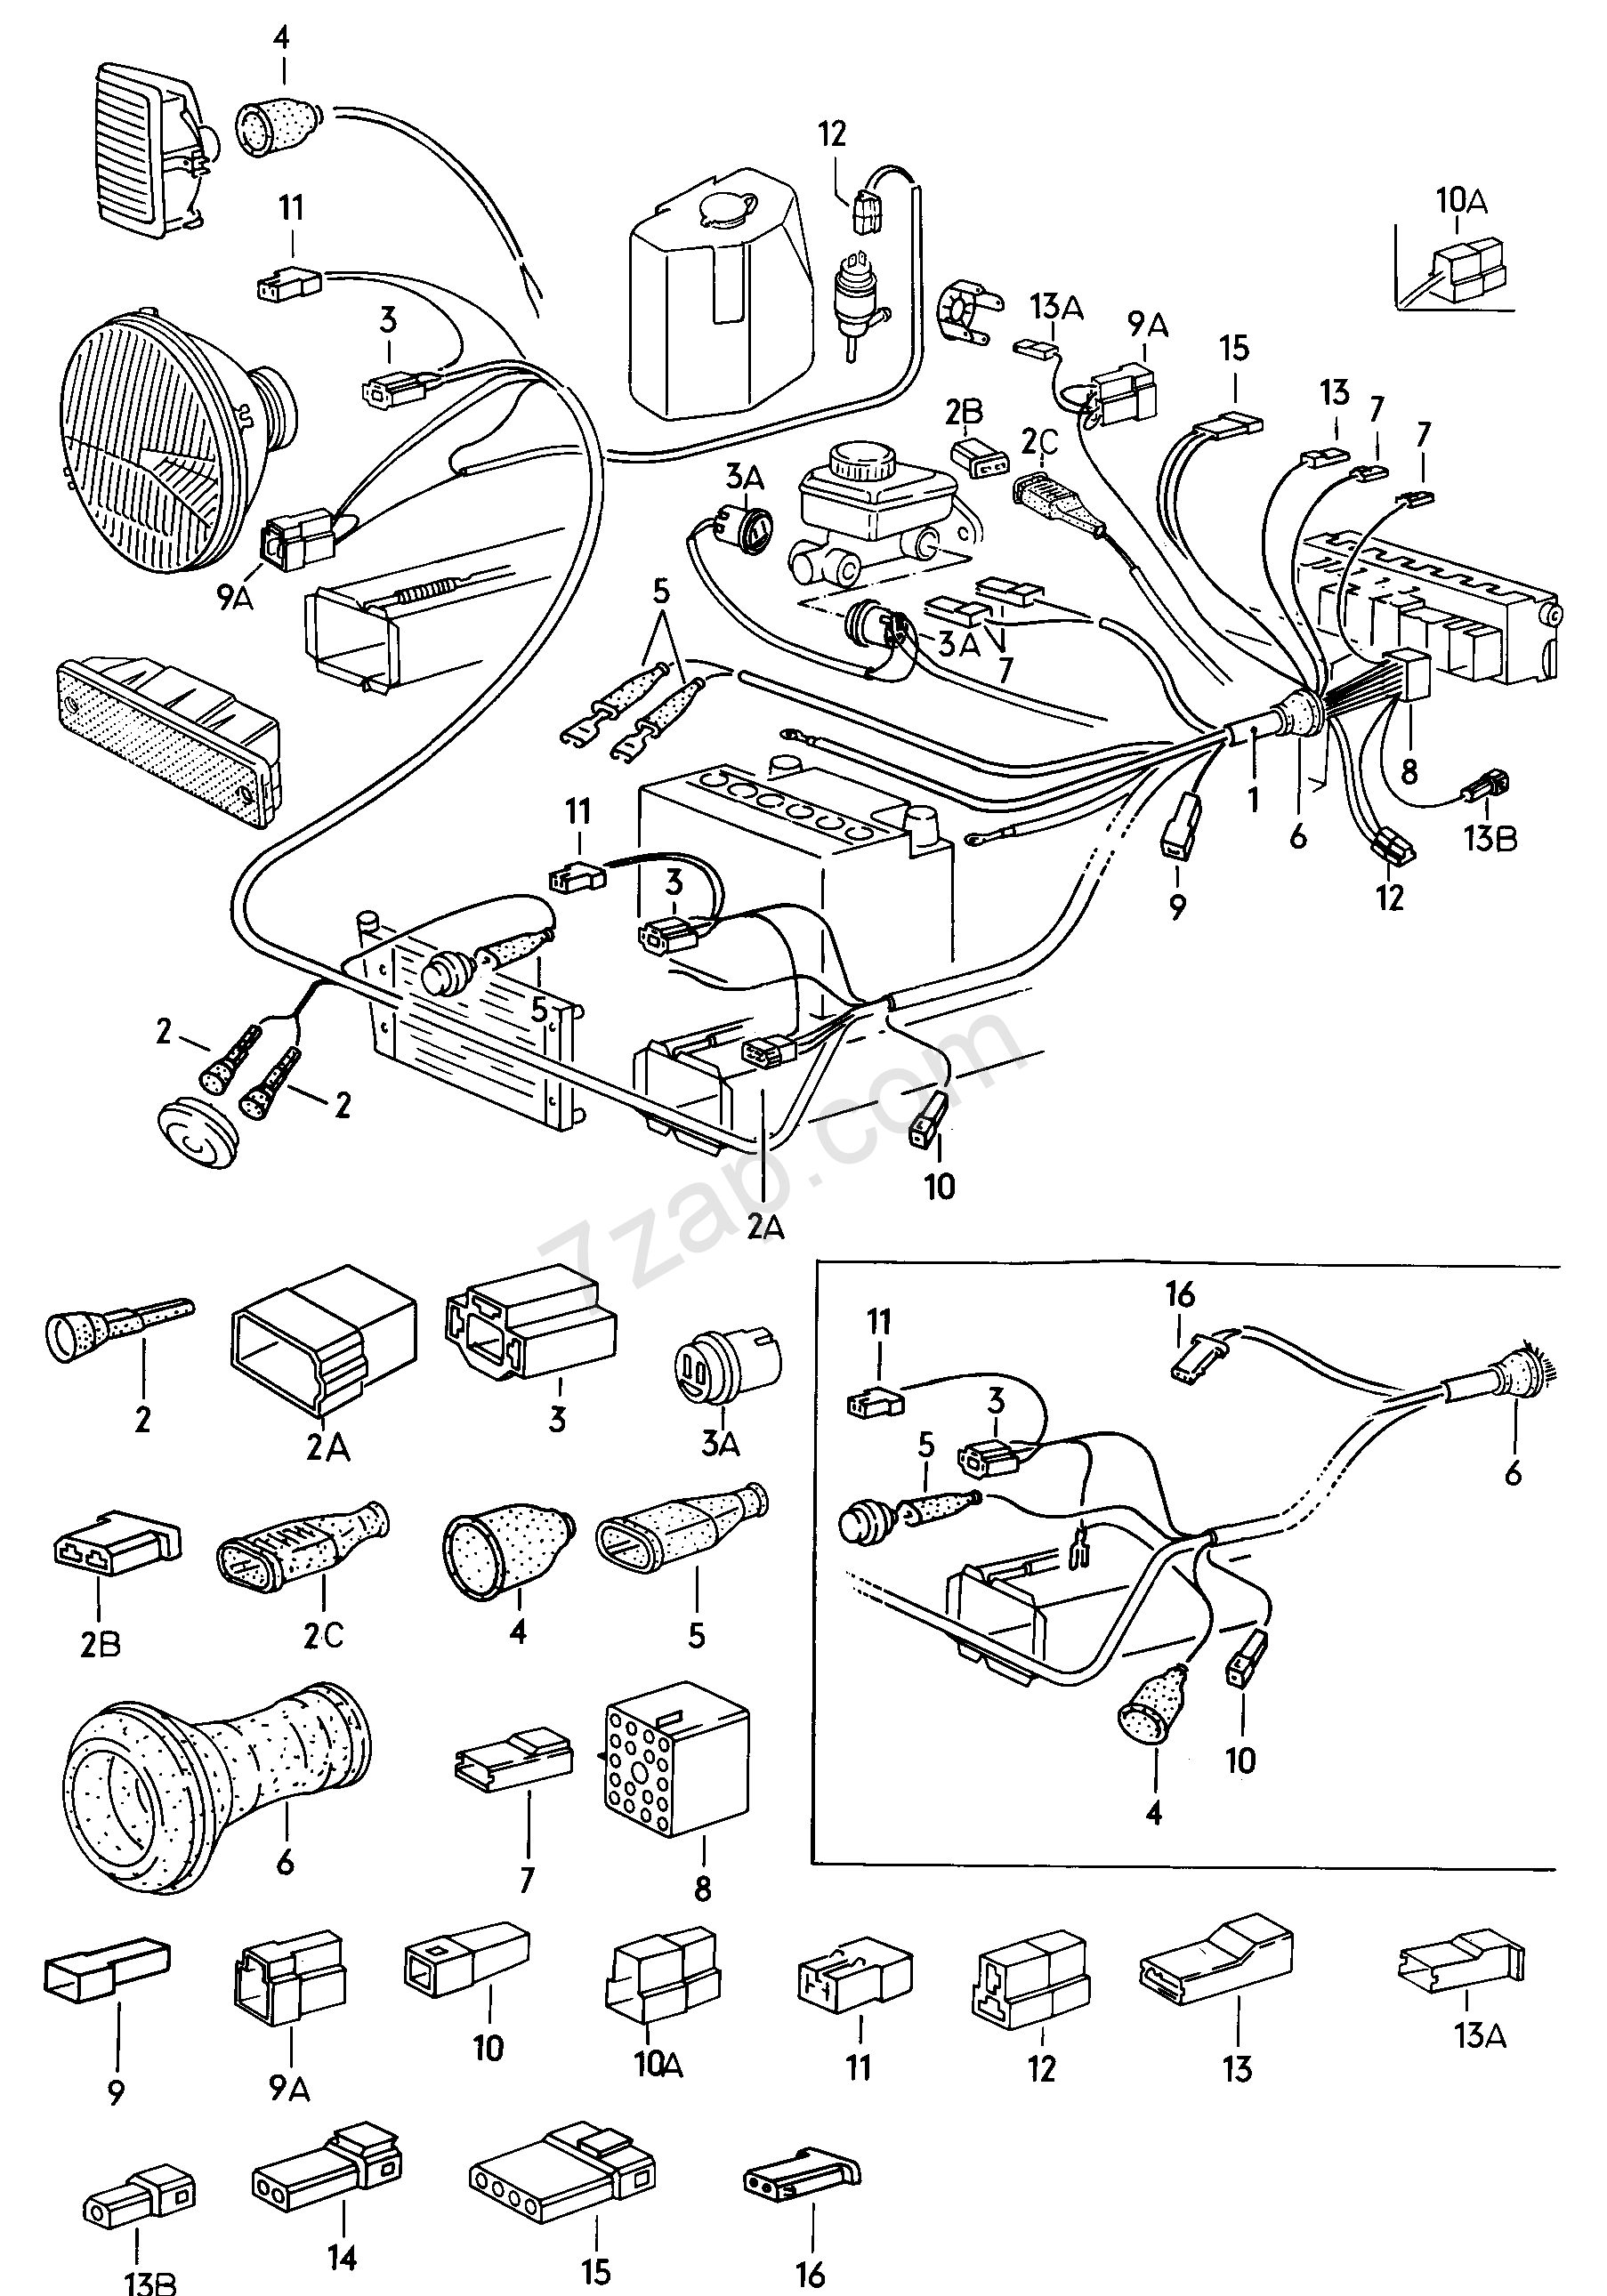 f15 wiring harness f15 wiring diagram and schematics wiring harness front left f >> 15 k